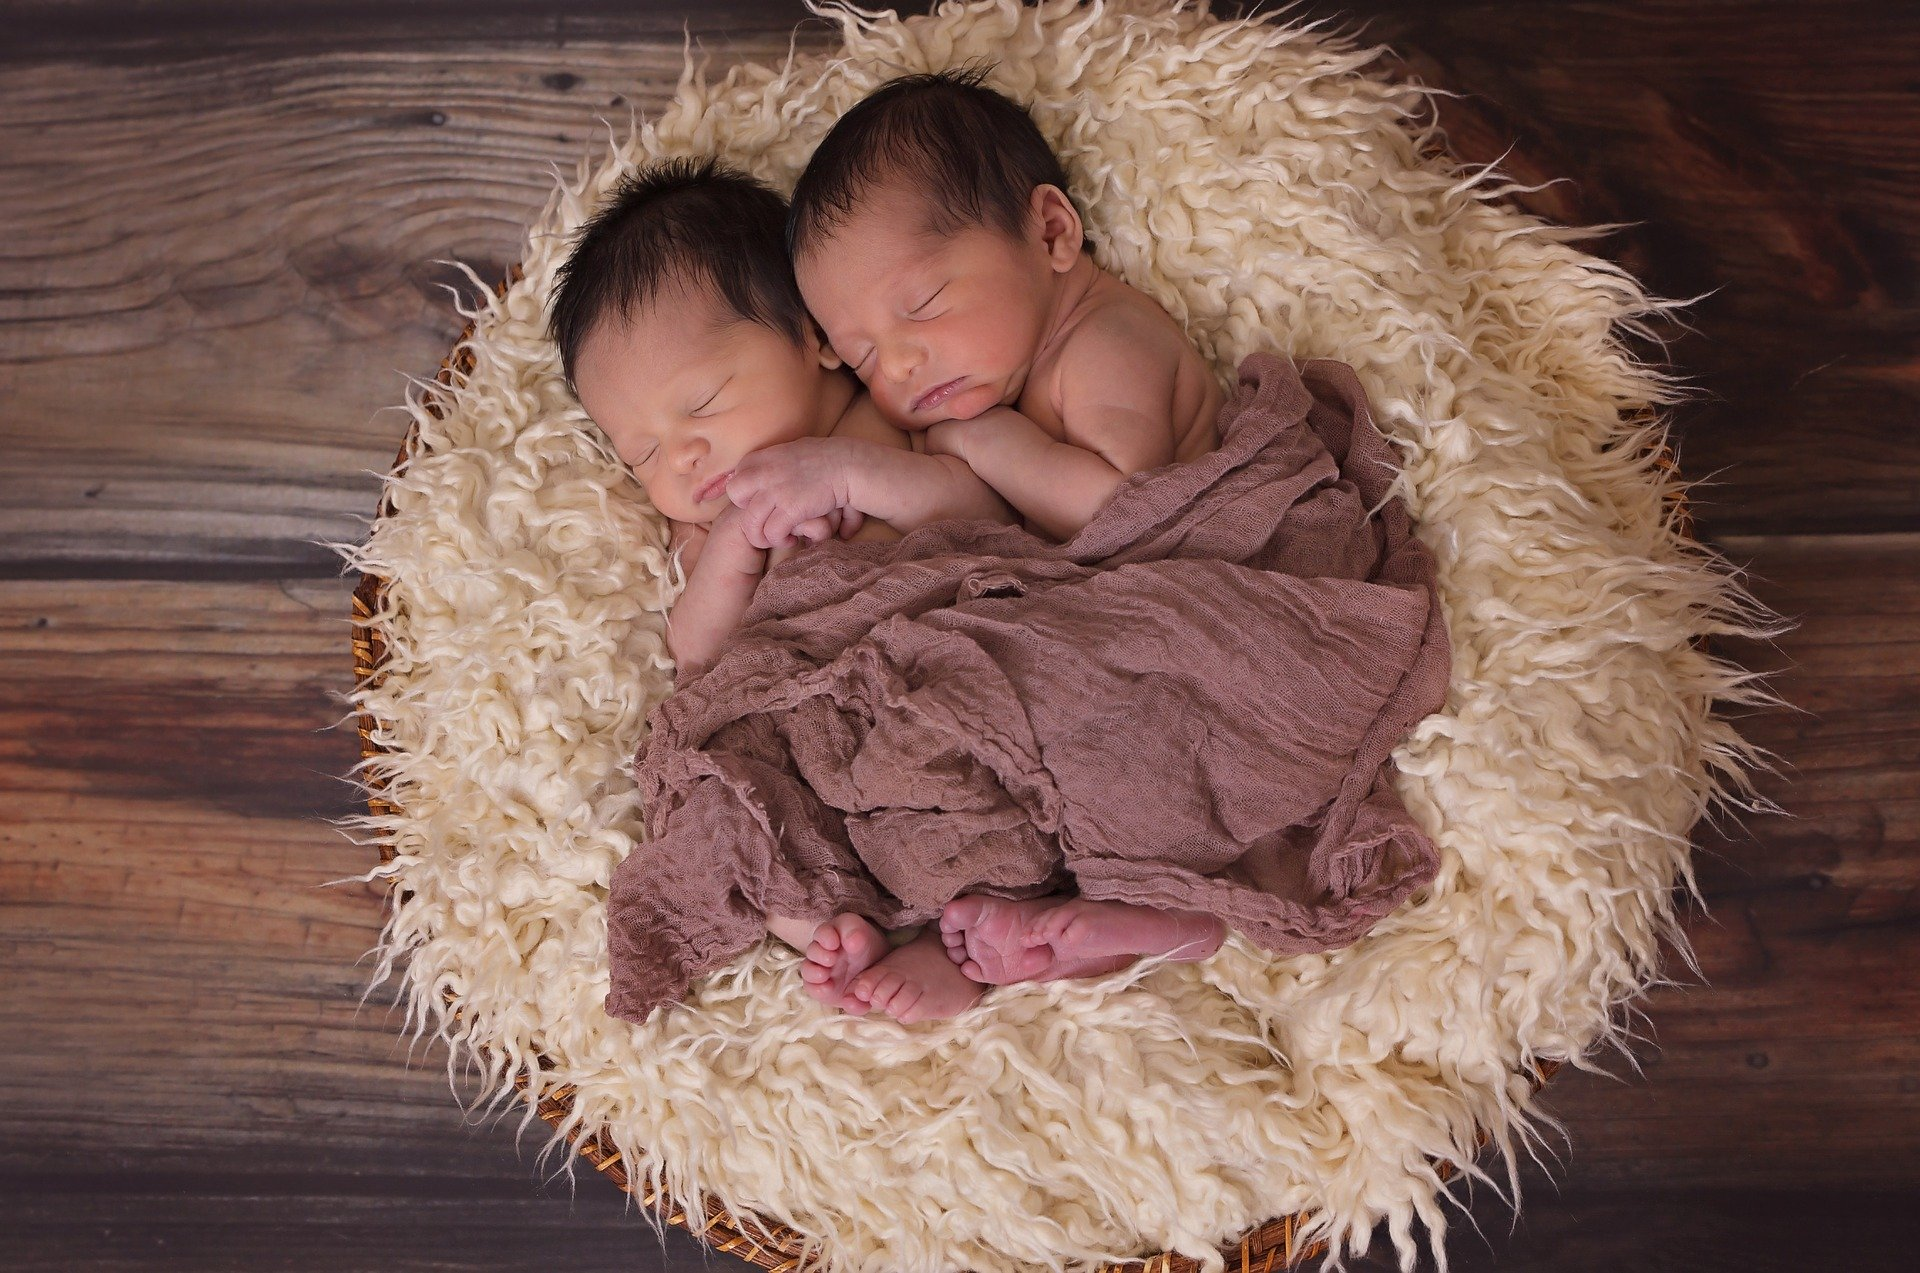 Pictured - An image of newborn twin baby boys sleeping   Source: Pixabay